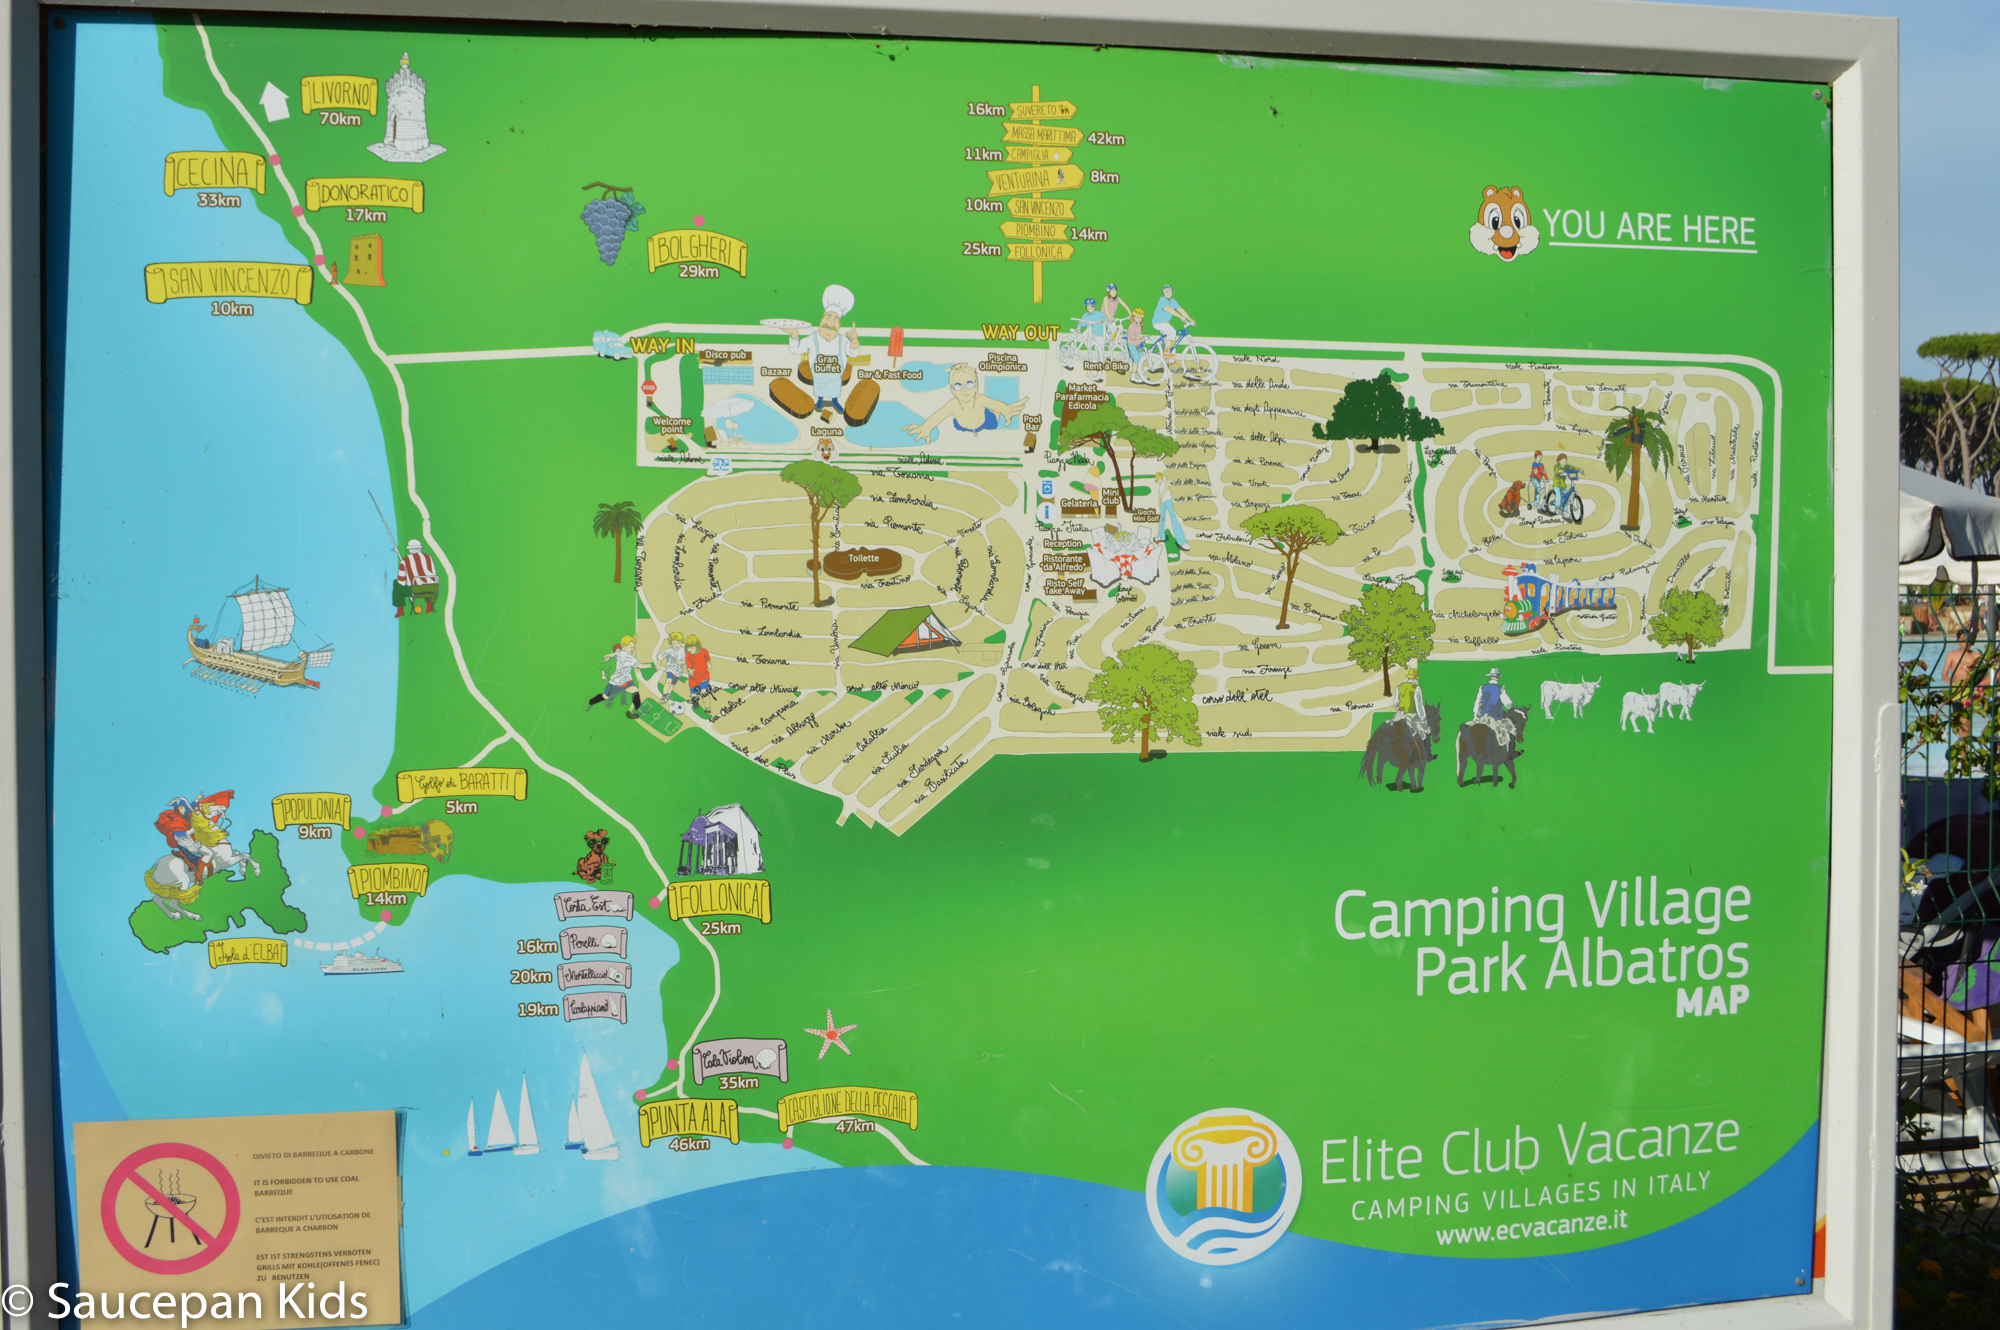 Saucepan Kids visit Parc Albatros in Tuscany with Canvas Holidays 2017 - The campsite layout